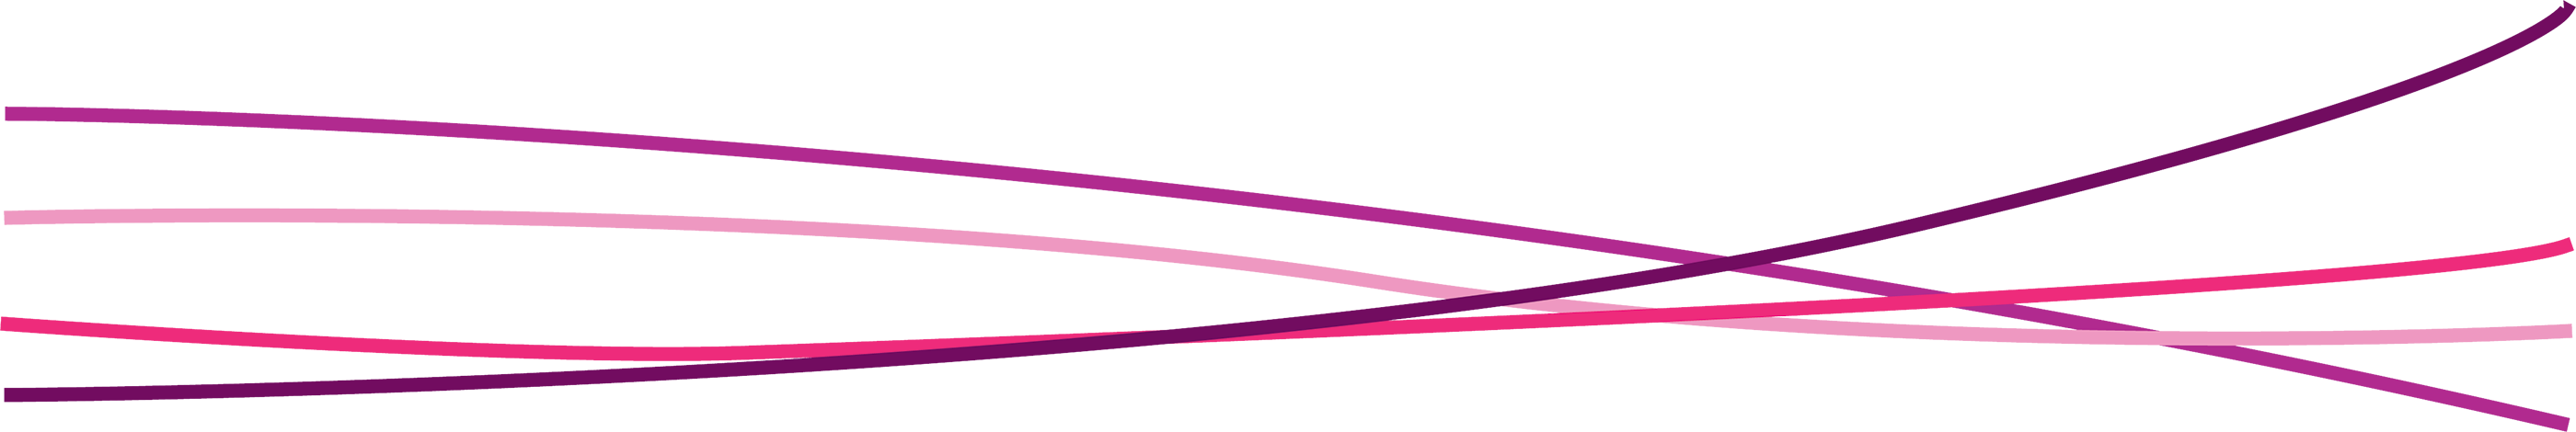 Pink line png. Abstract lines photo arts